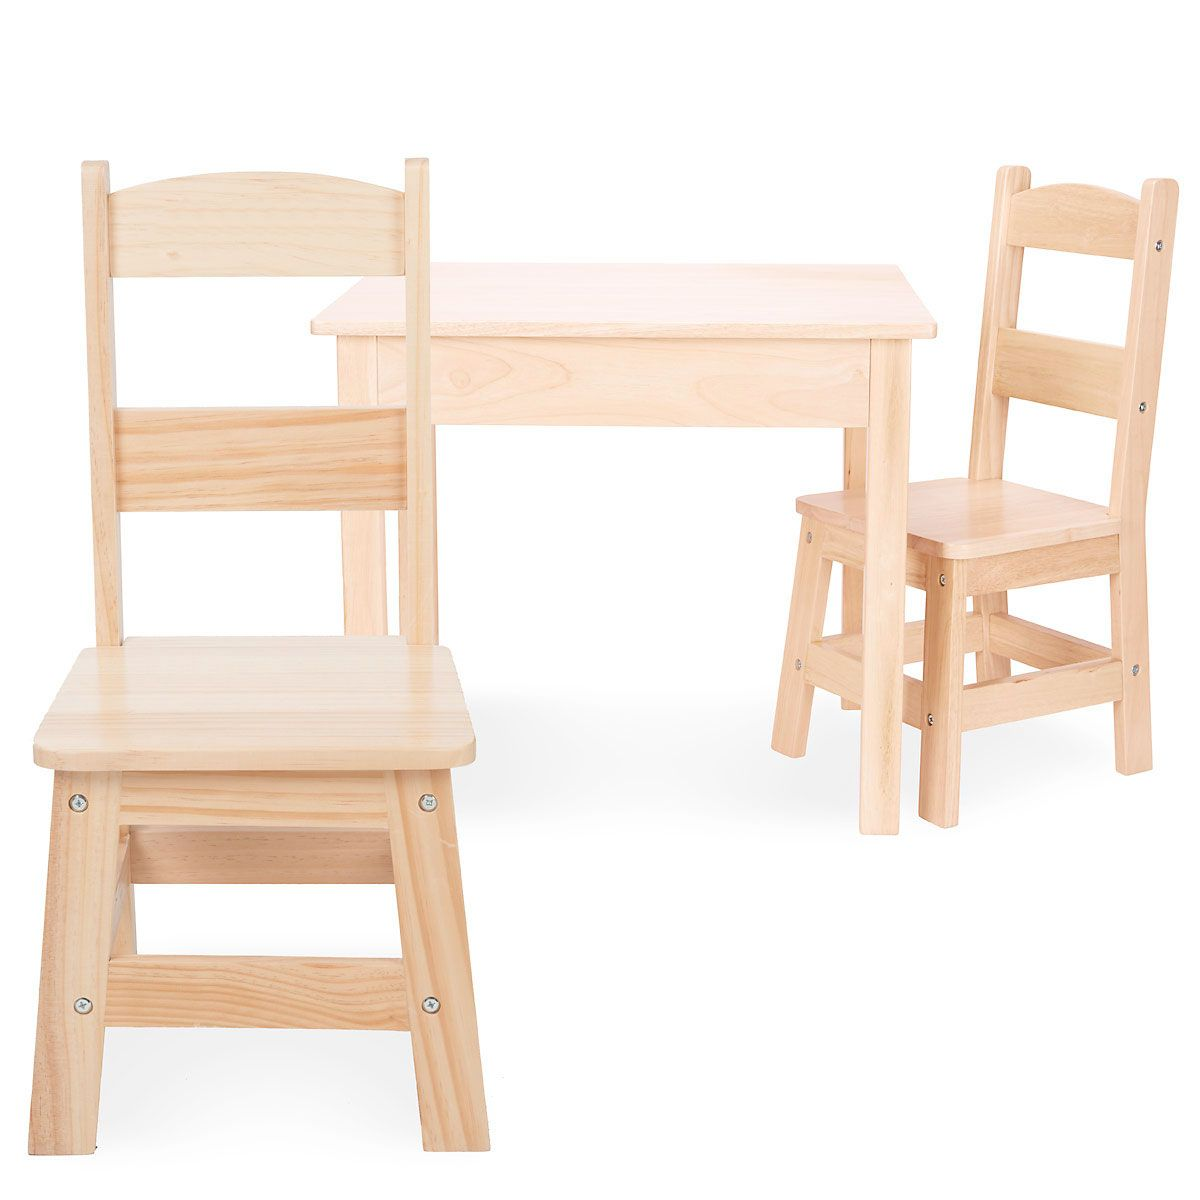 Wooden Table and Chairs by Melissa & Doug - Natural Wooden Table and Chairs by Melissa & Doug - Natural